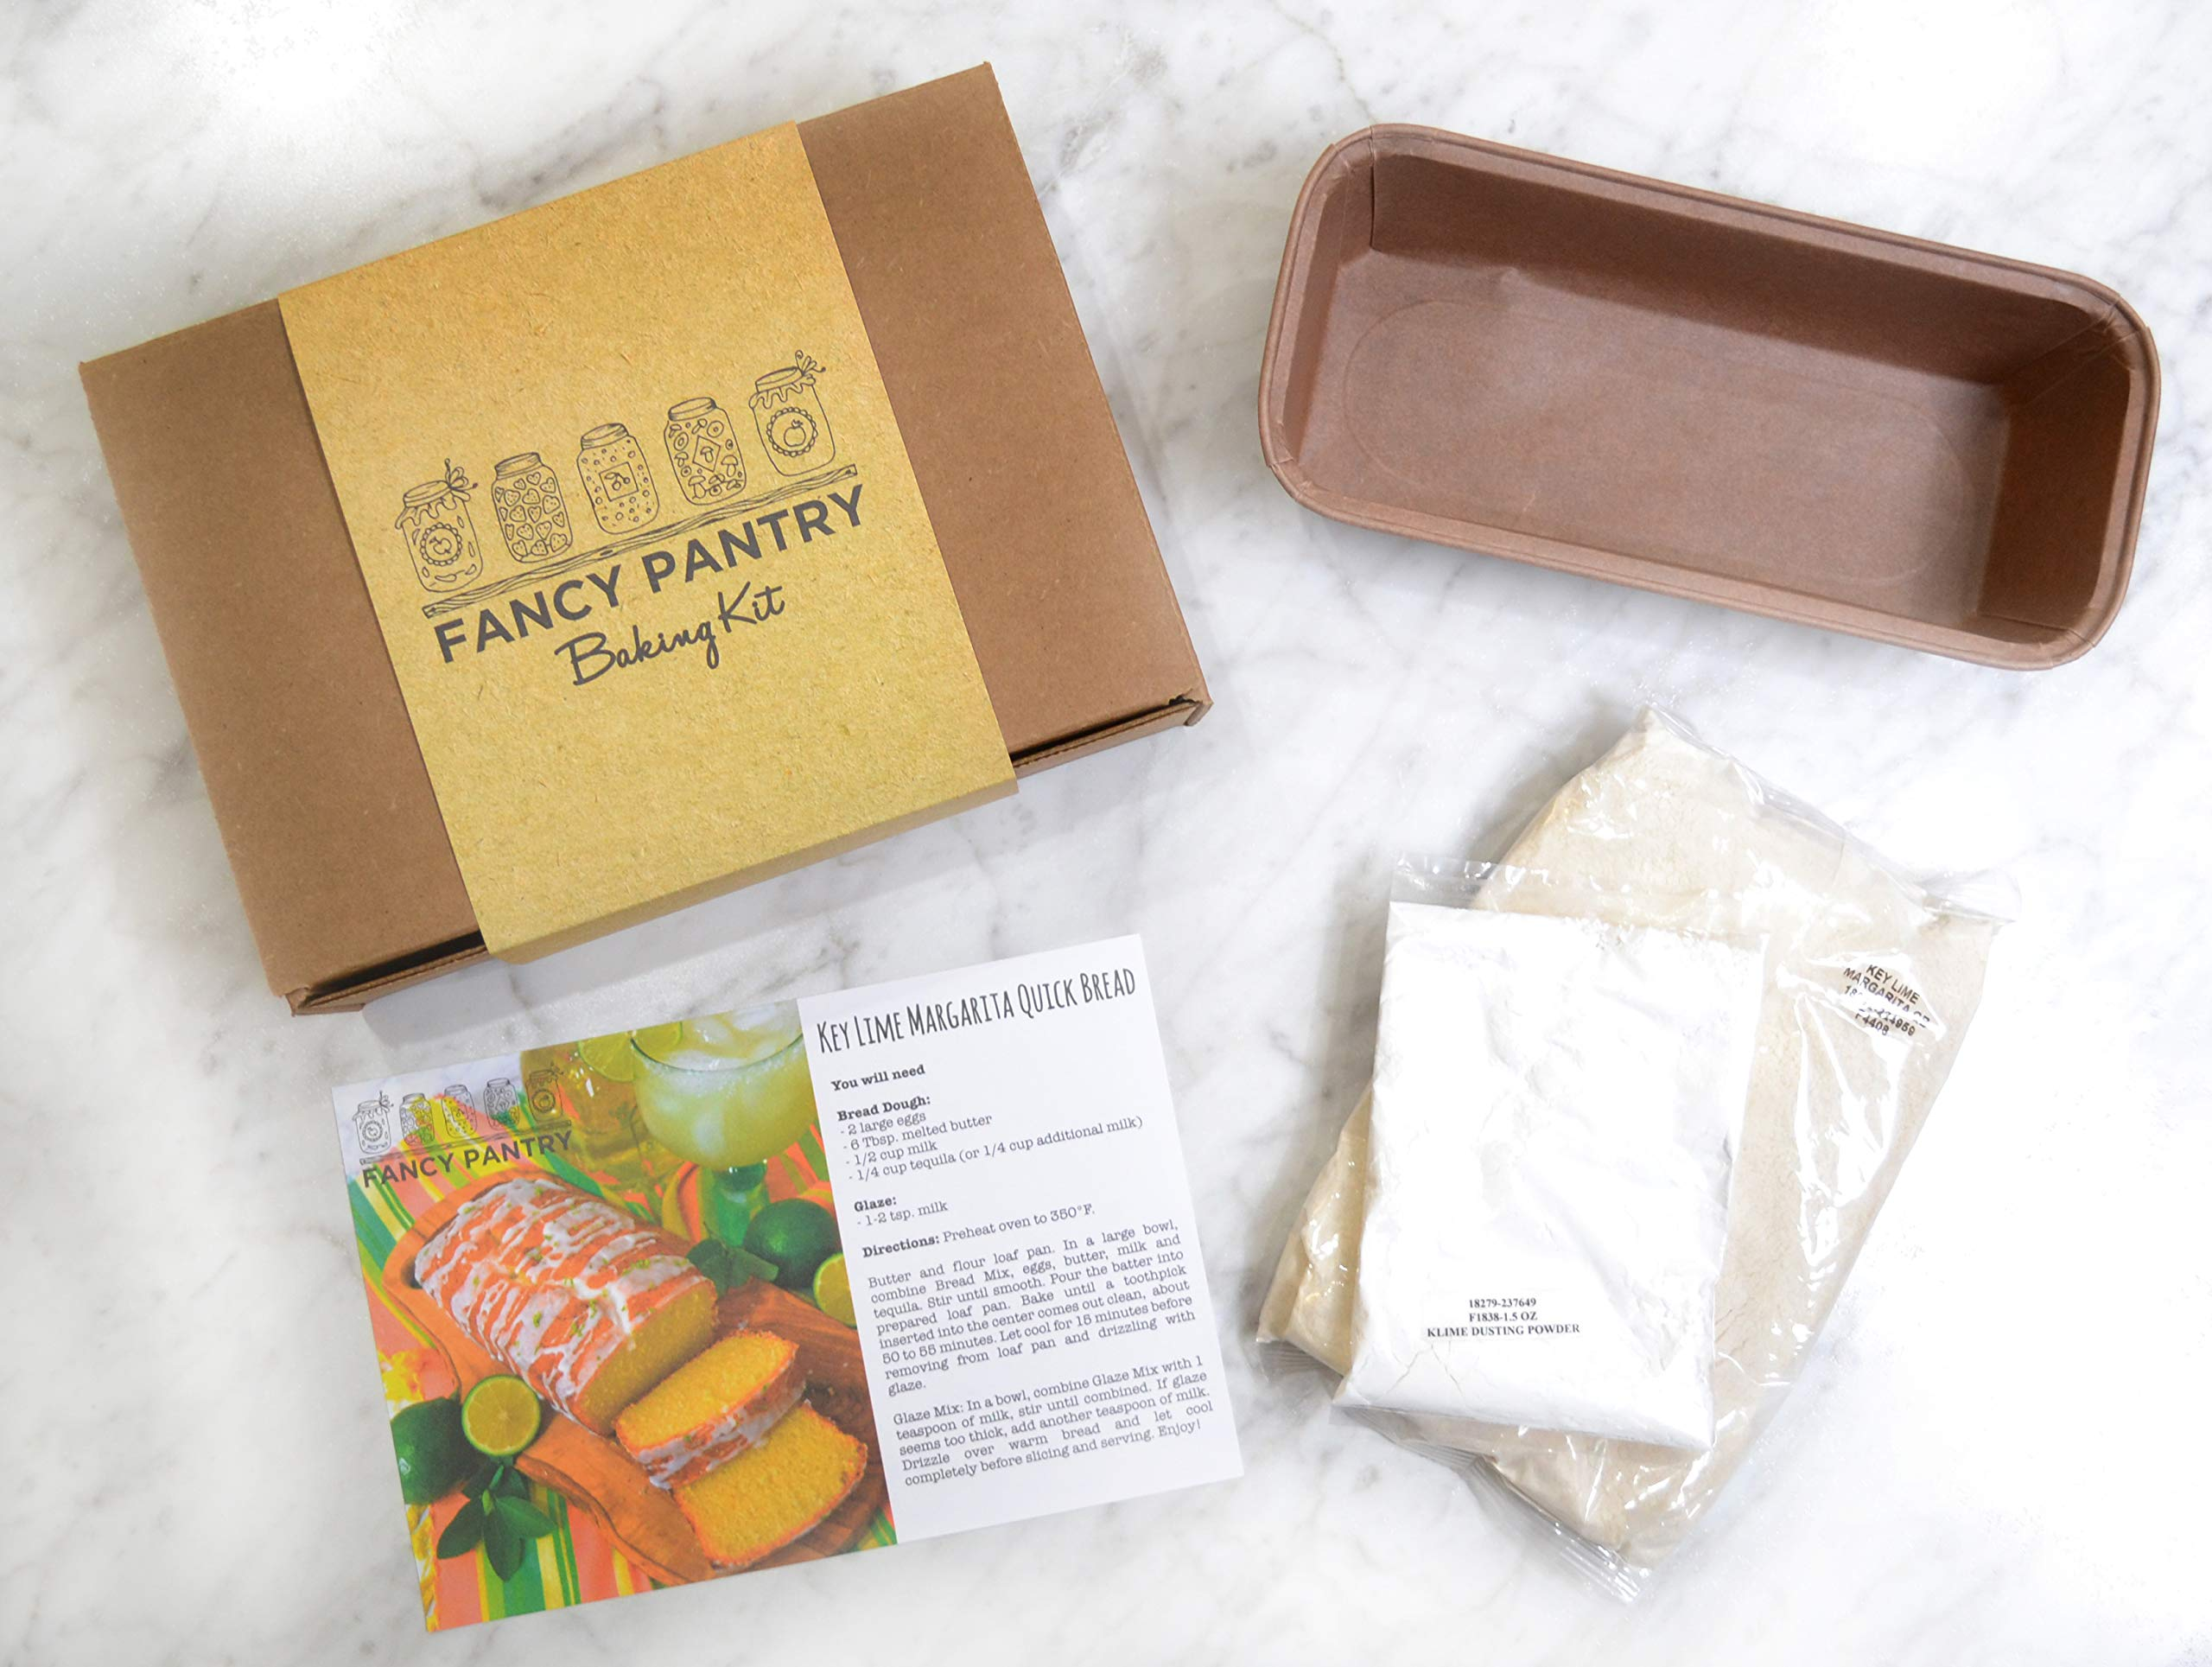 Fancy Pantry Key Lime Margarita Quick Bread Mix and Pan, 17.5 Ounce